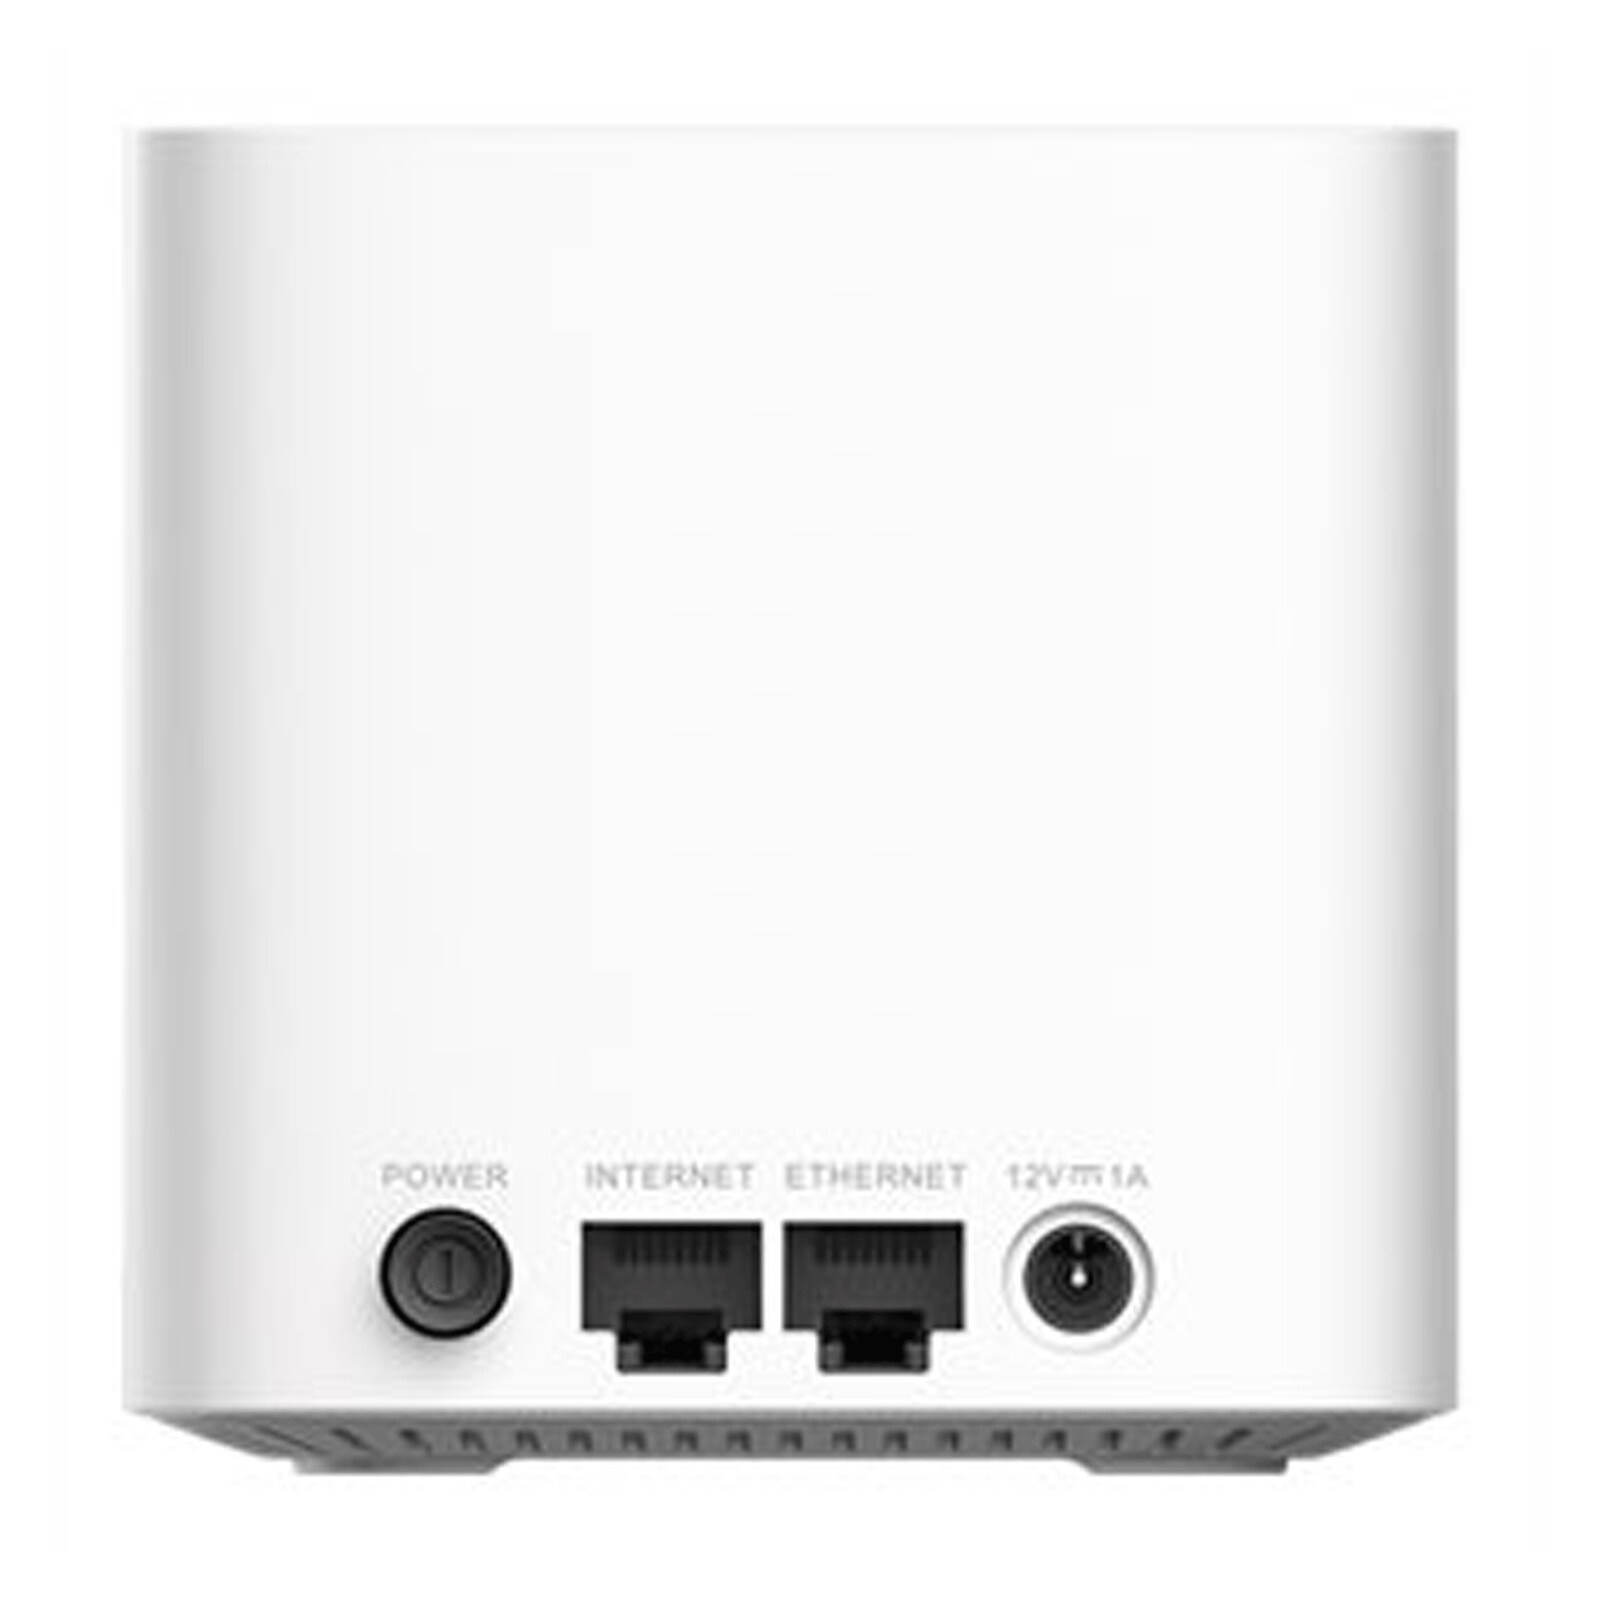 D-Link Covr Whole Home COVR-1103 Mesh Router